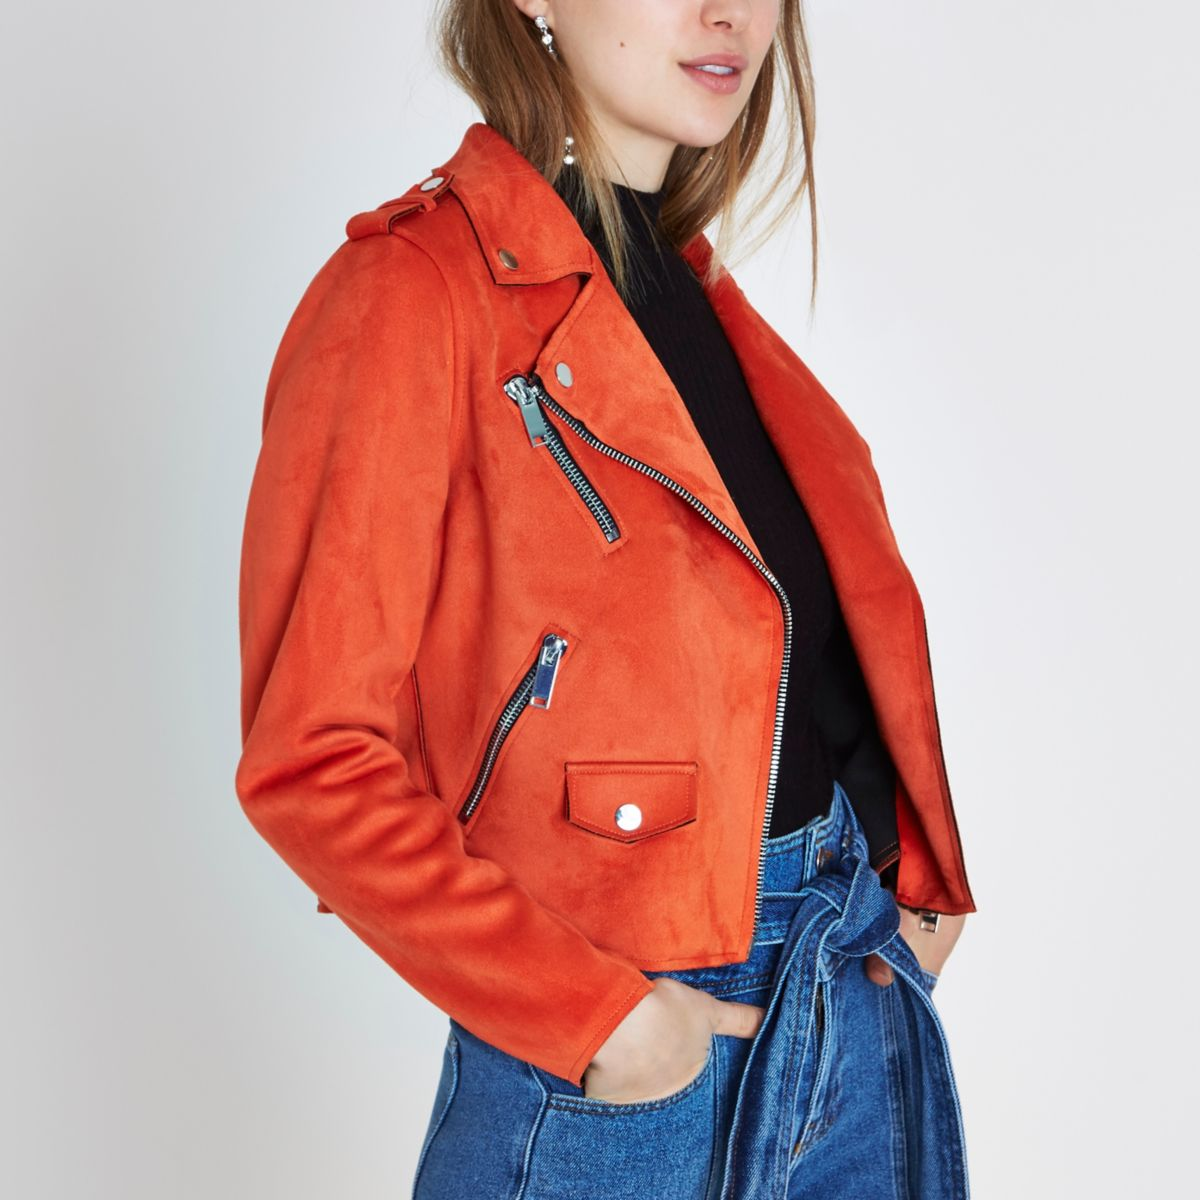 Bikerjacke aus Wildlederimitat in hellem Orange